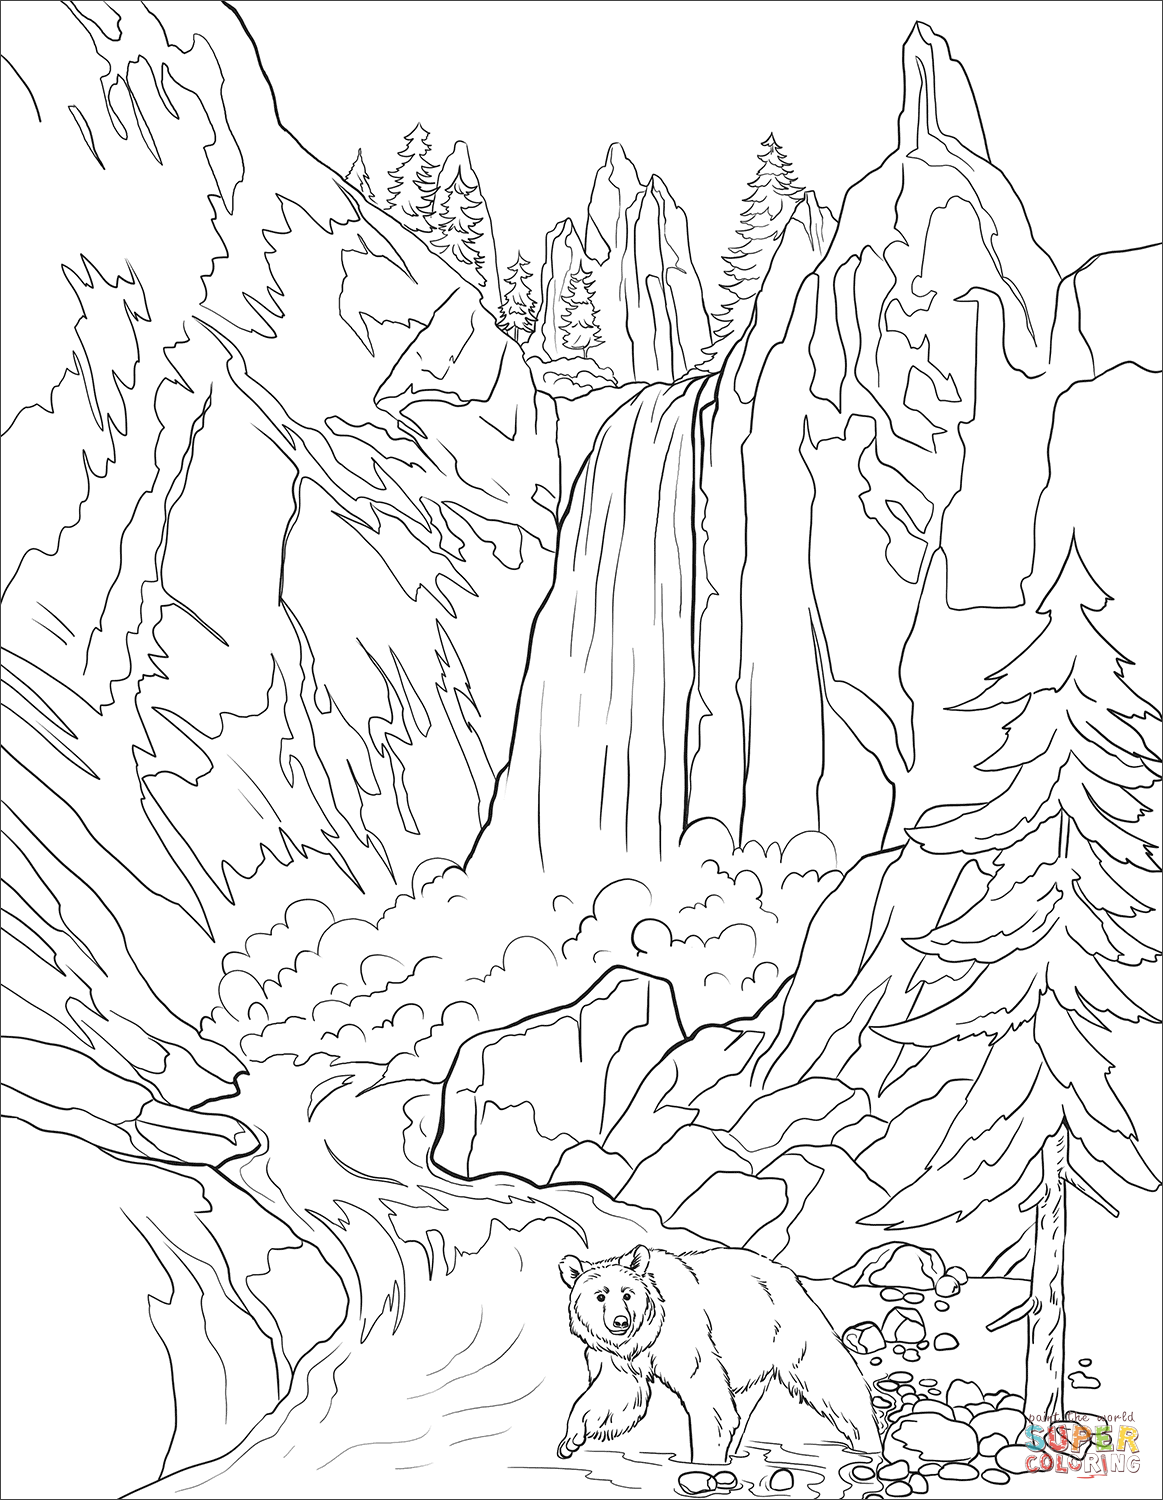 yellowstone national park coloring pages yellowstone national park geyser coloring page coloring coloring yellowstone pages national park